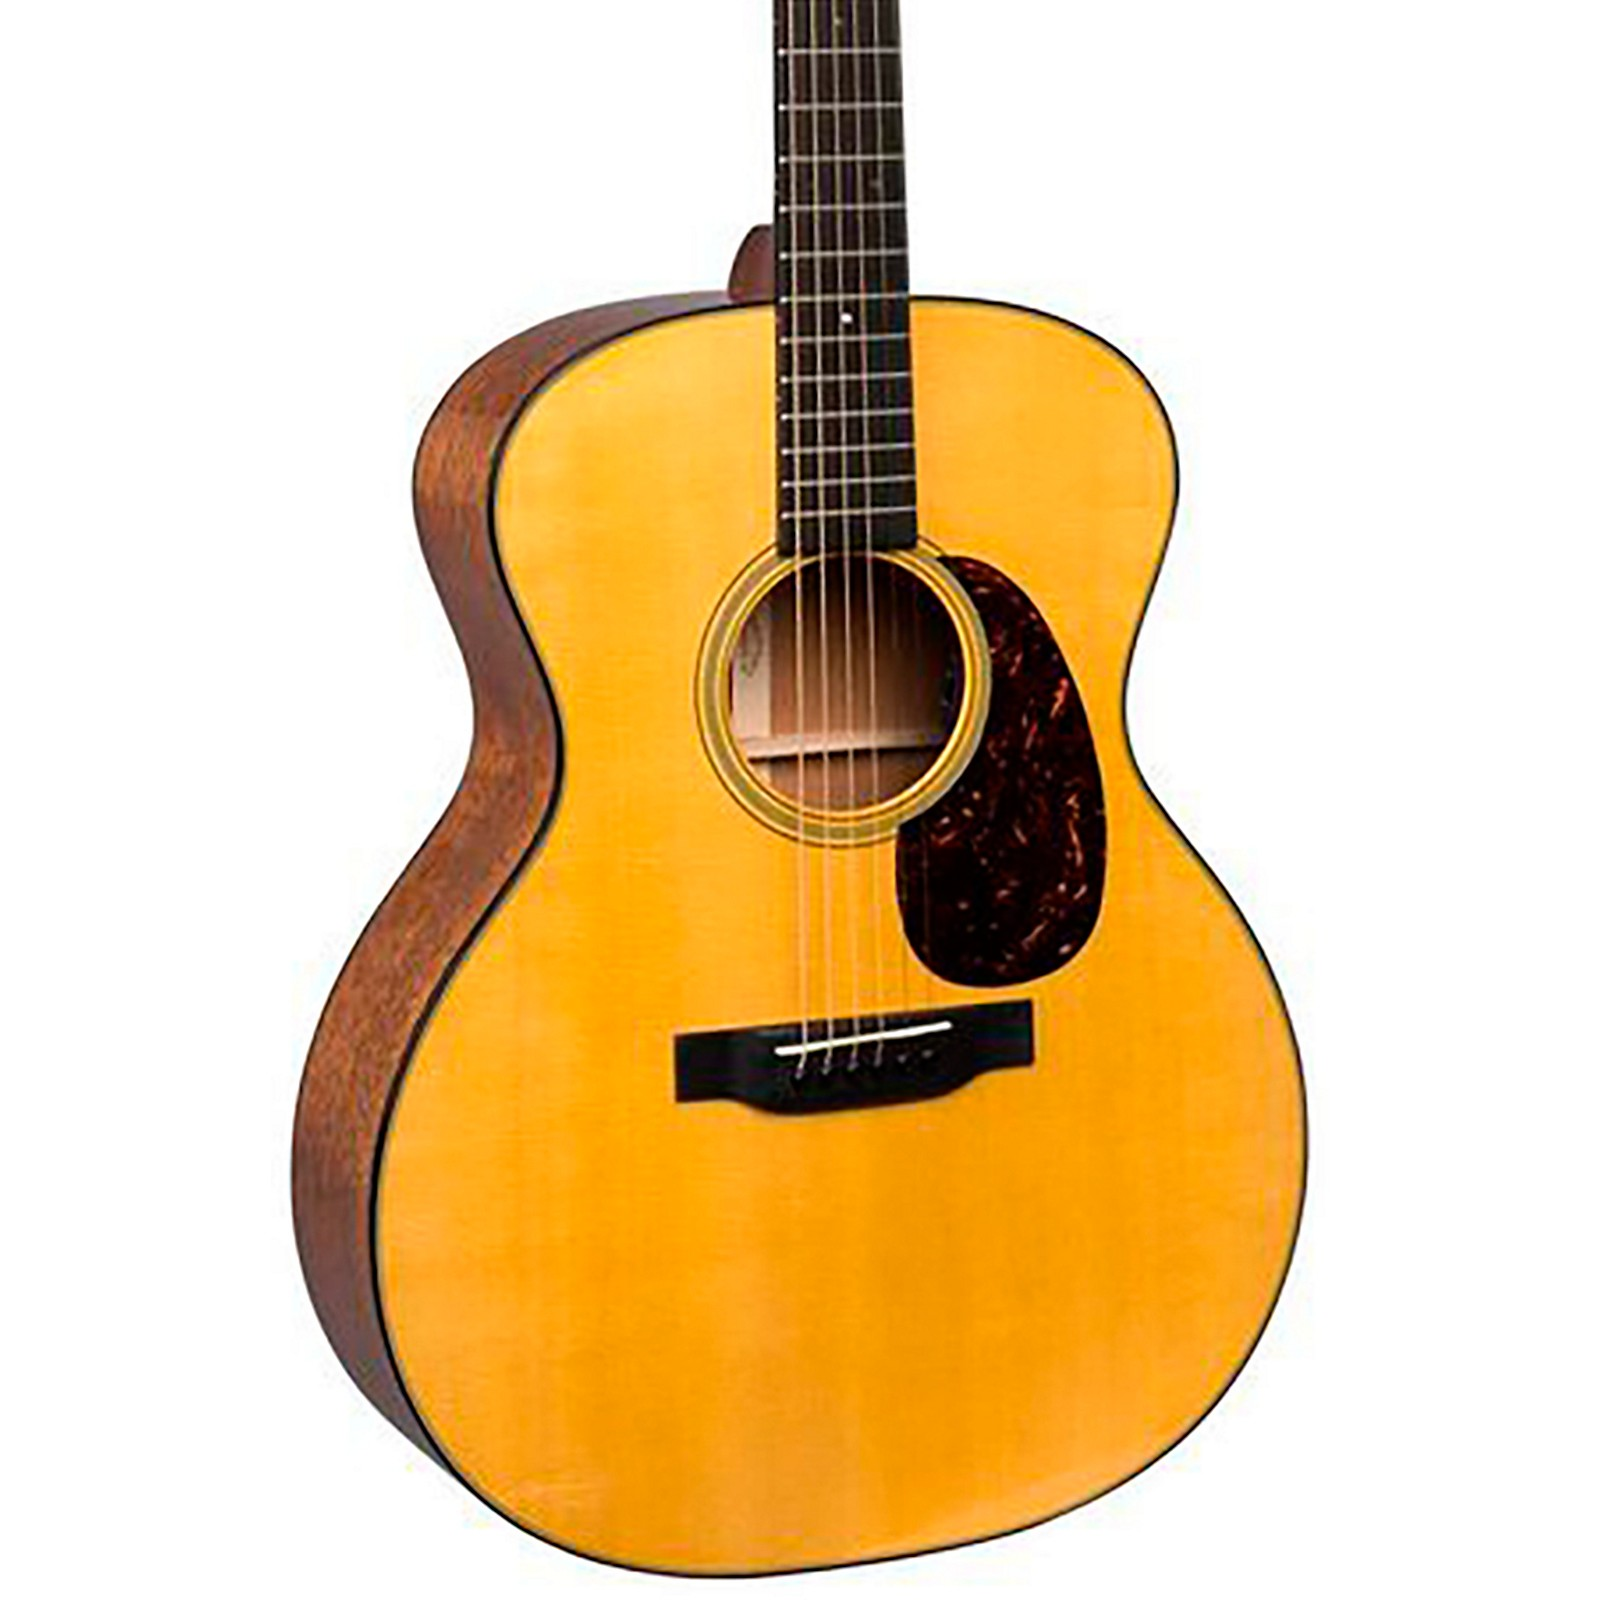 Martin GP-18E Grand Performance Acoustic-Electric Guitar with L.R. Baggs Electronics